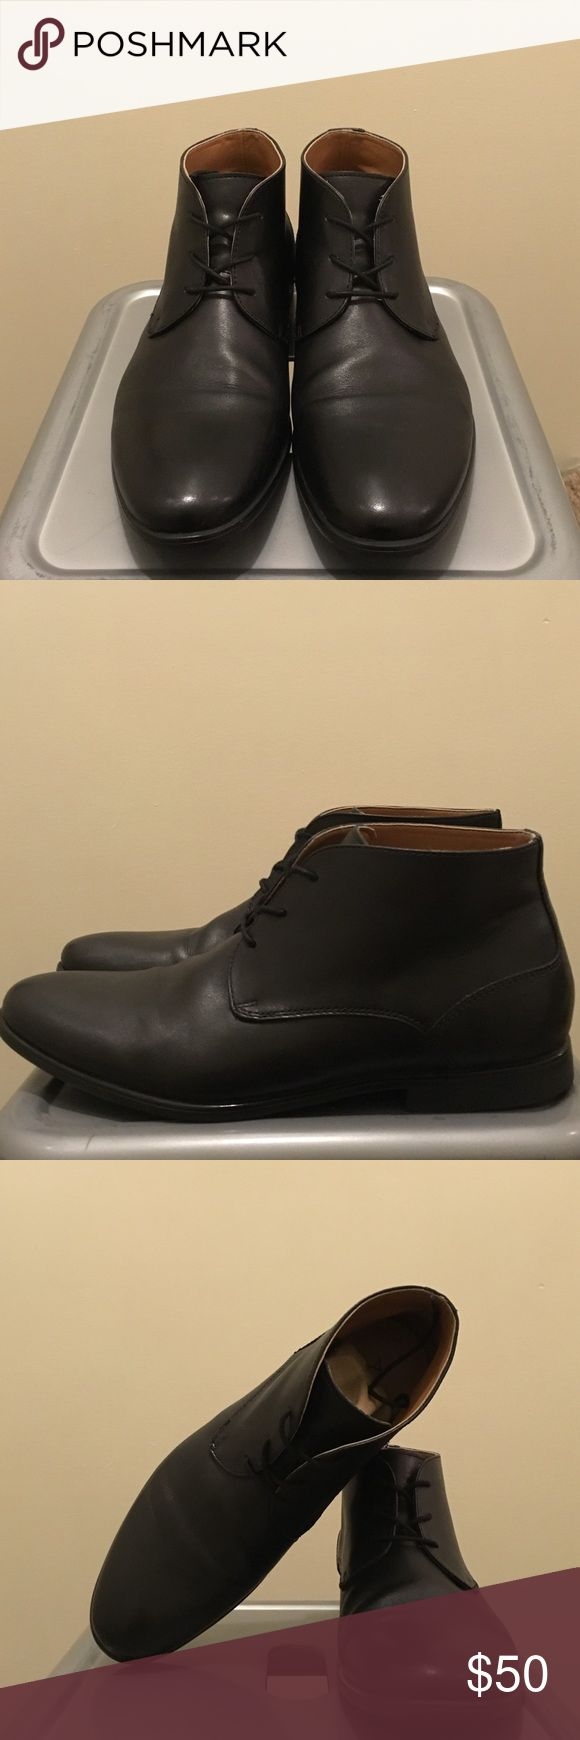 Men's Aldo Boot - size 10 Only worn a handful of times - contact if interested! Aldo Shoes Boots